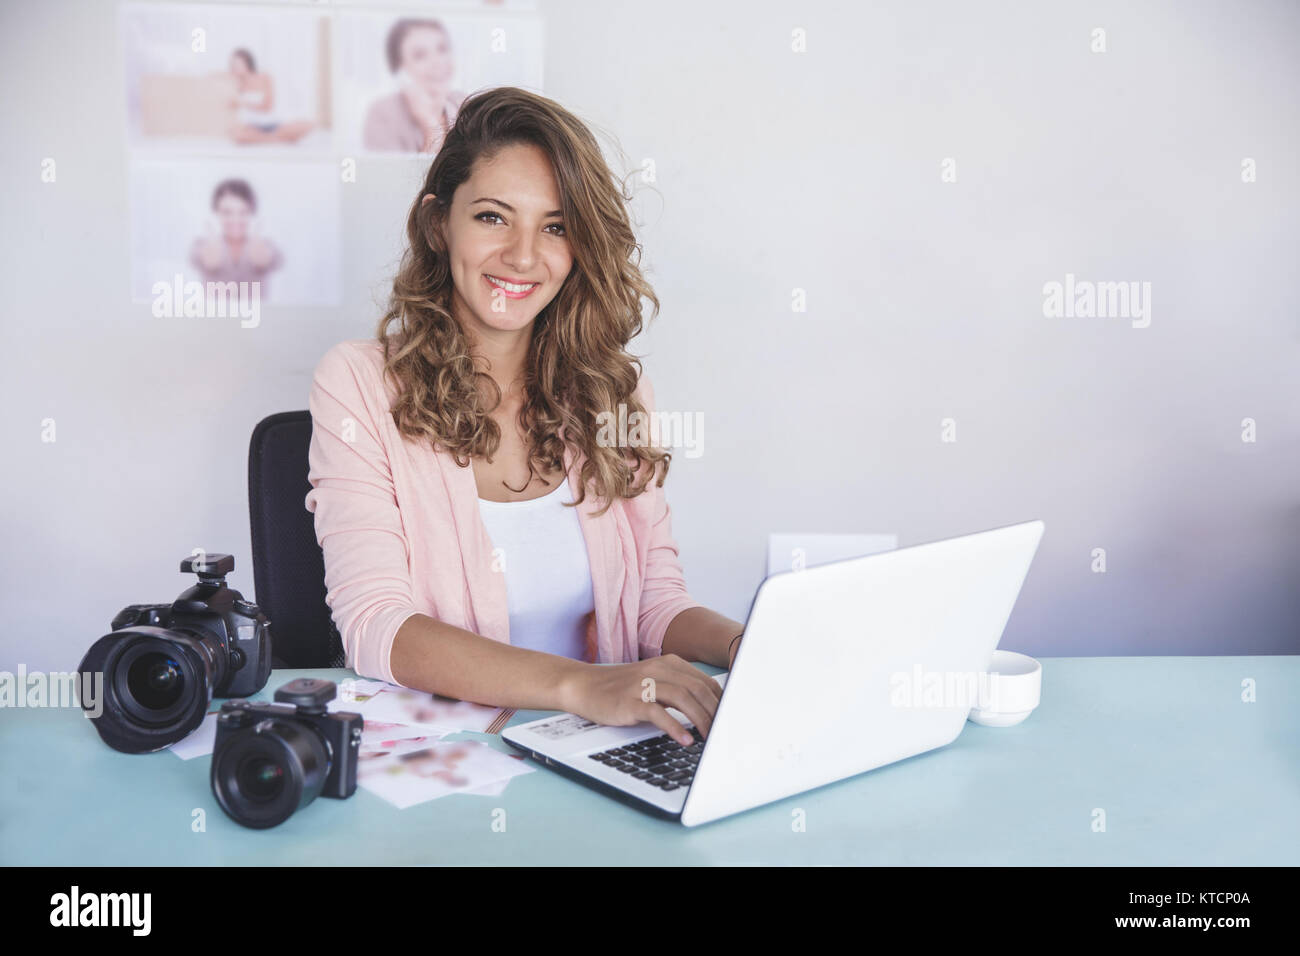 young photographer sitting on her office while working on laptop - Stock Image